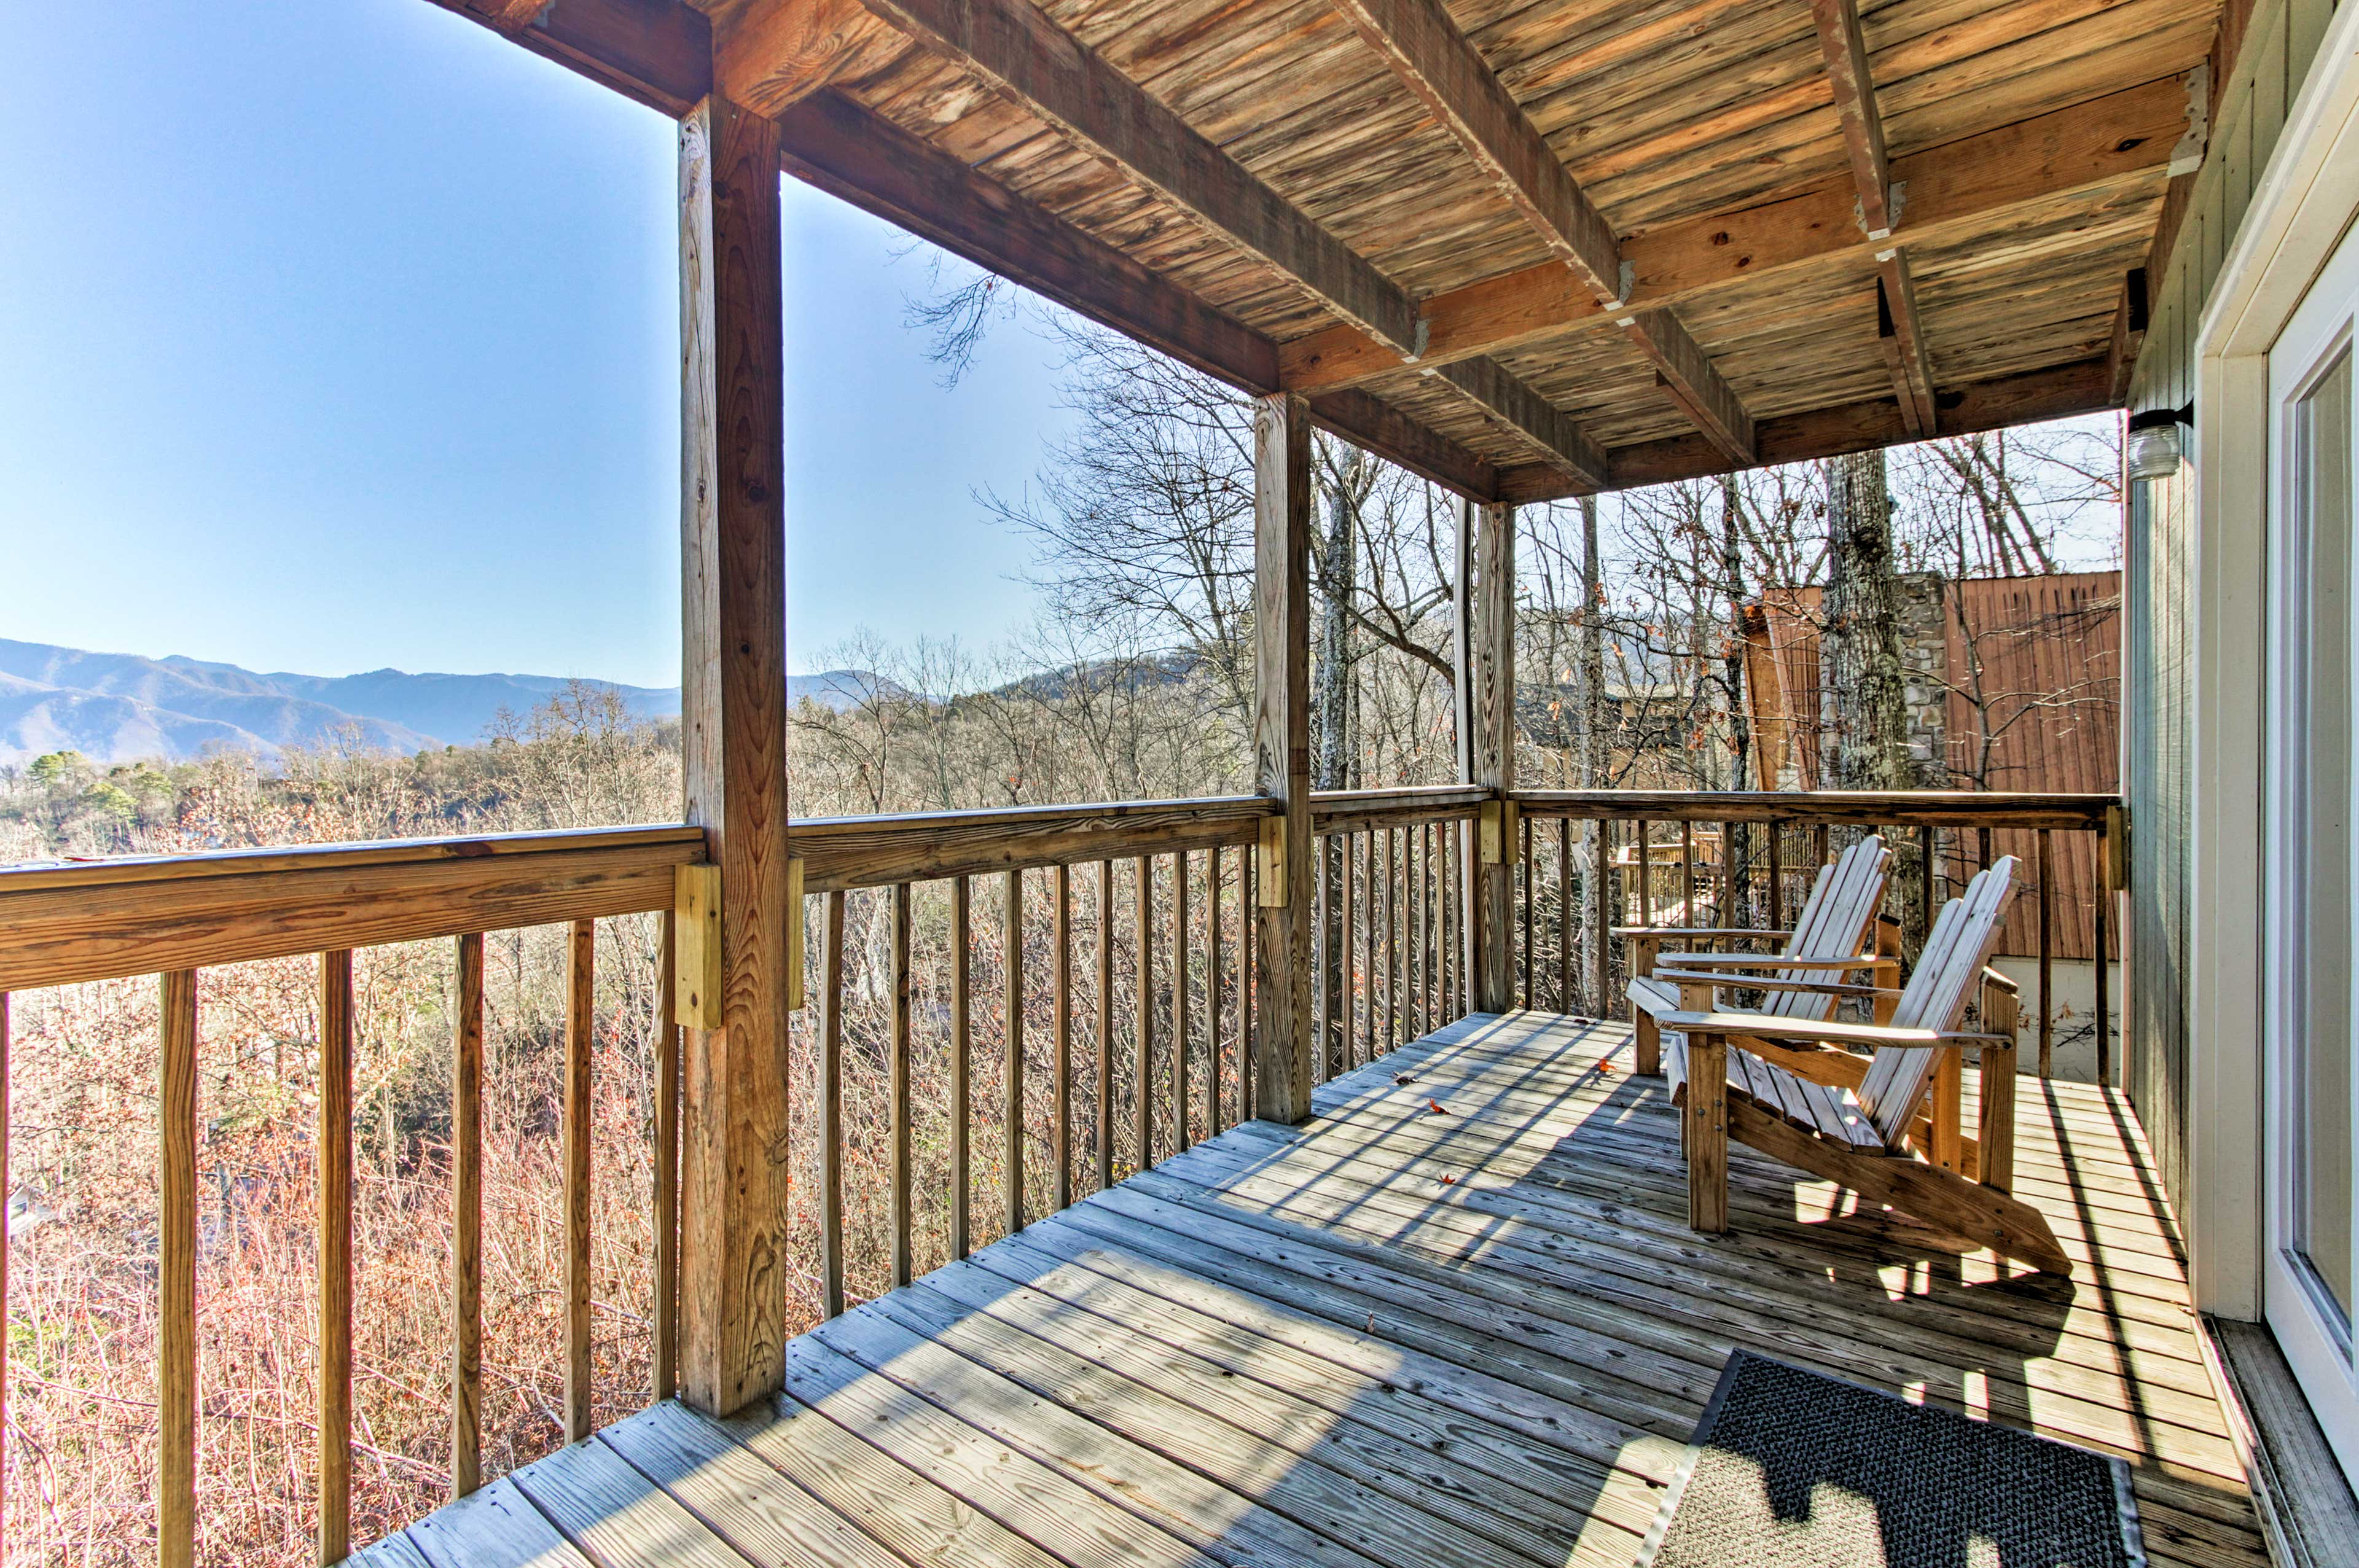 Sip your morning coffee in the Adirondack chairs on the lower deck.